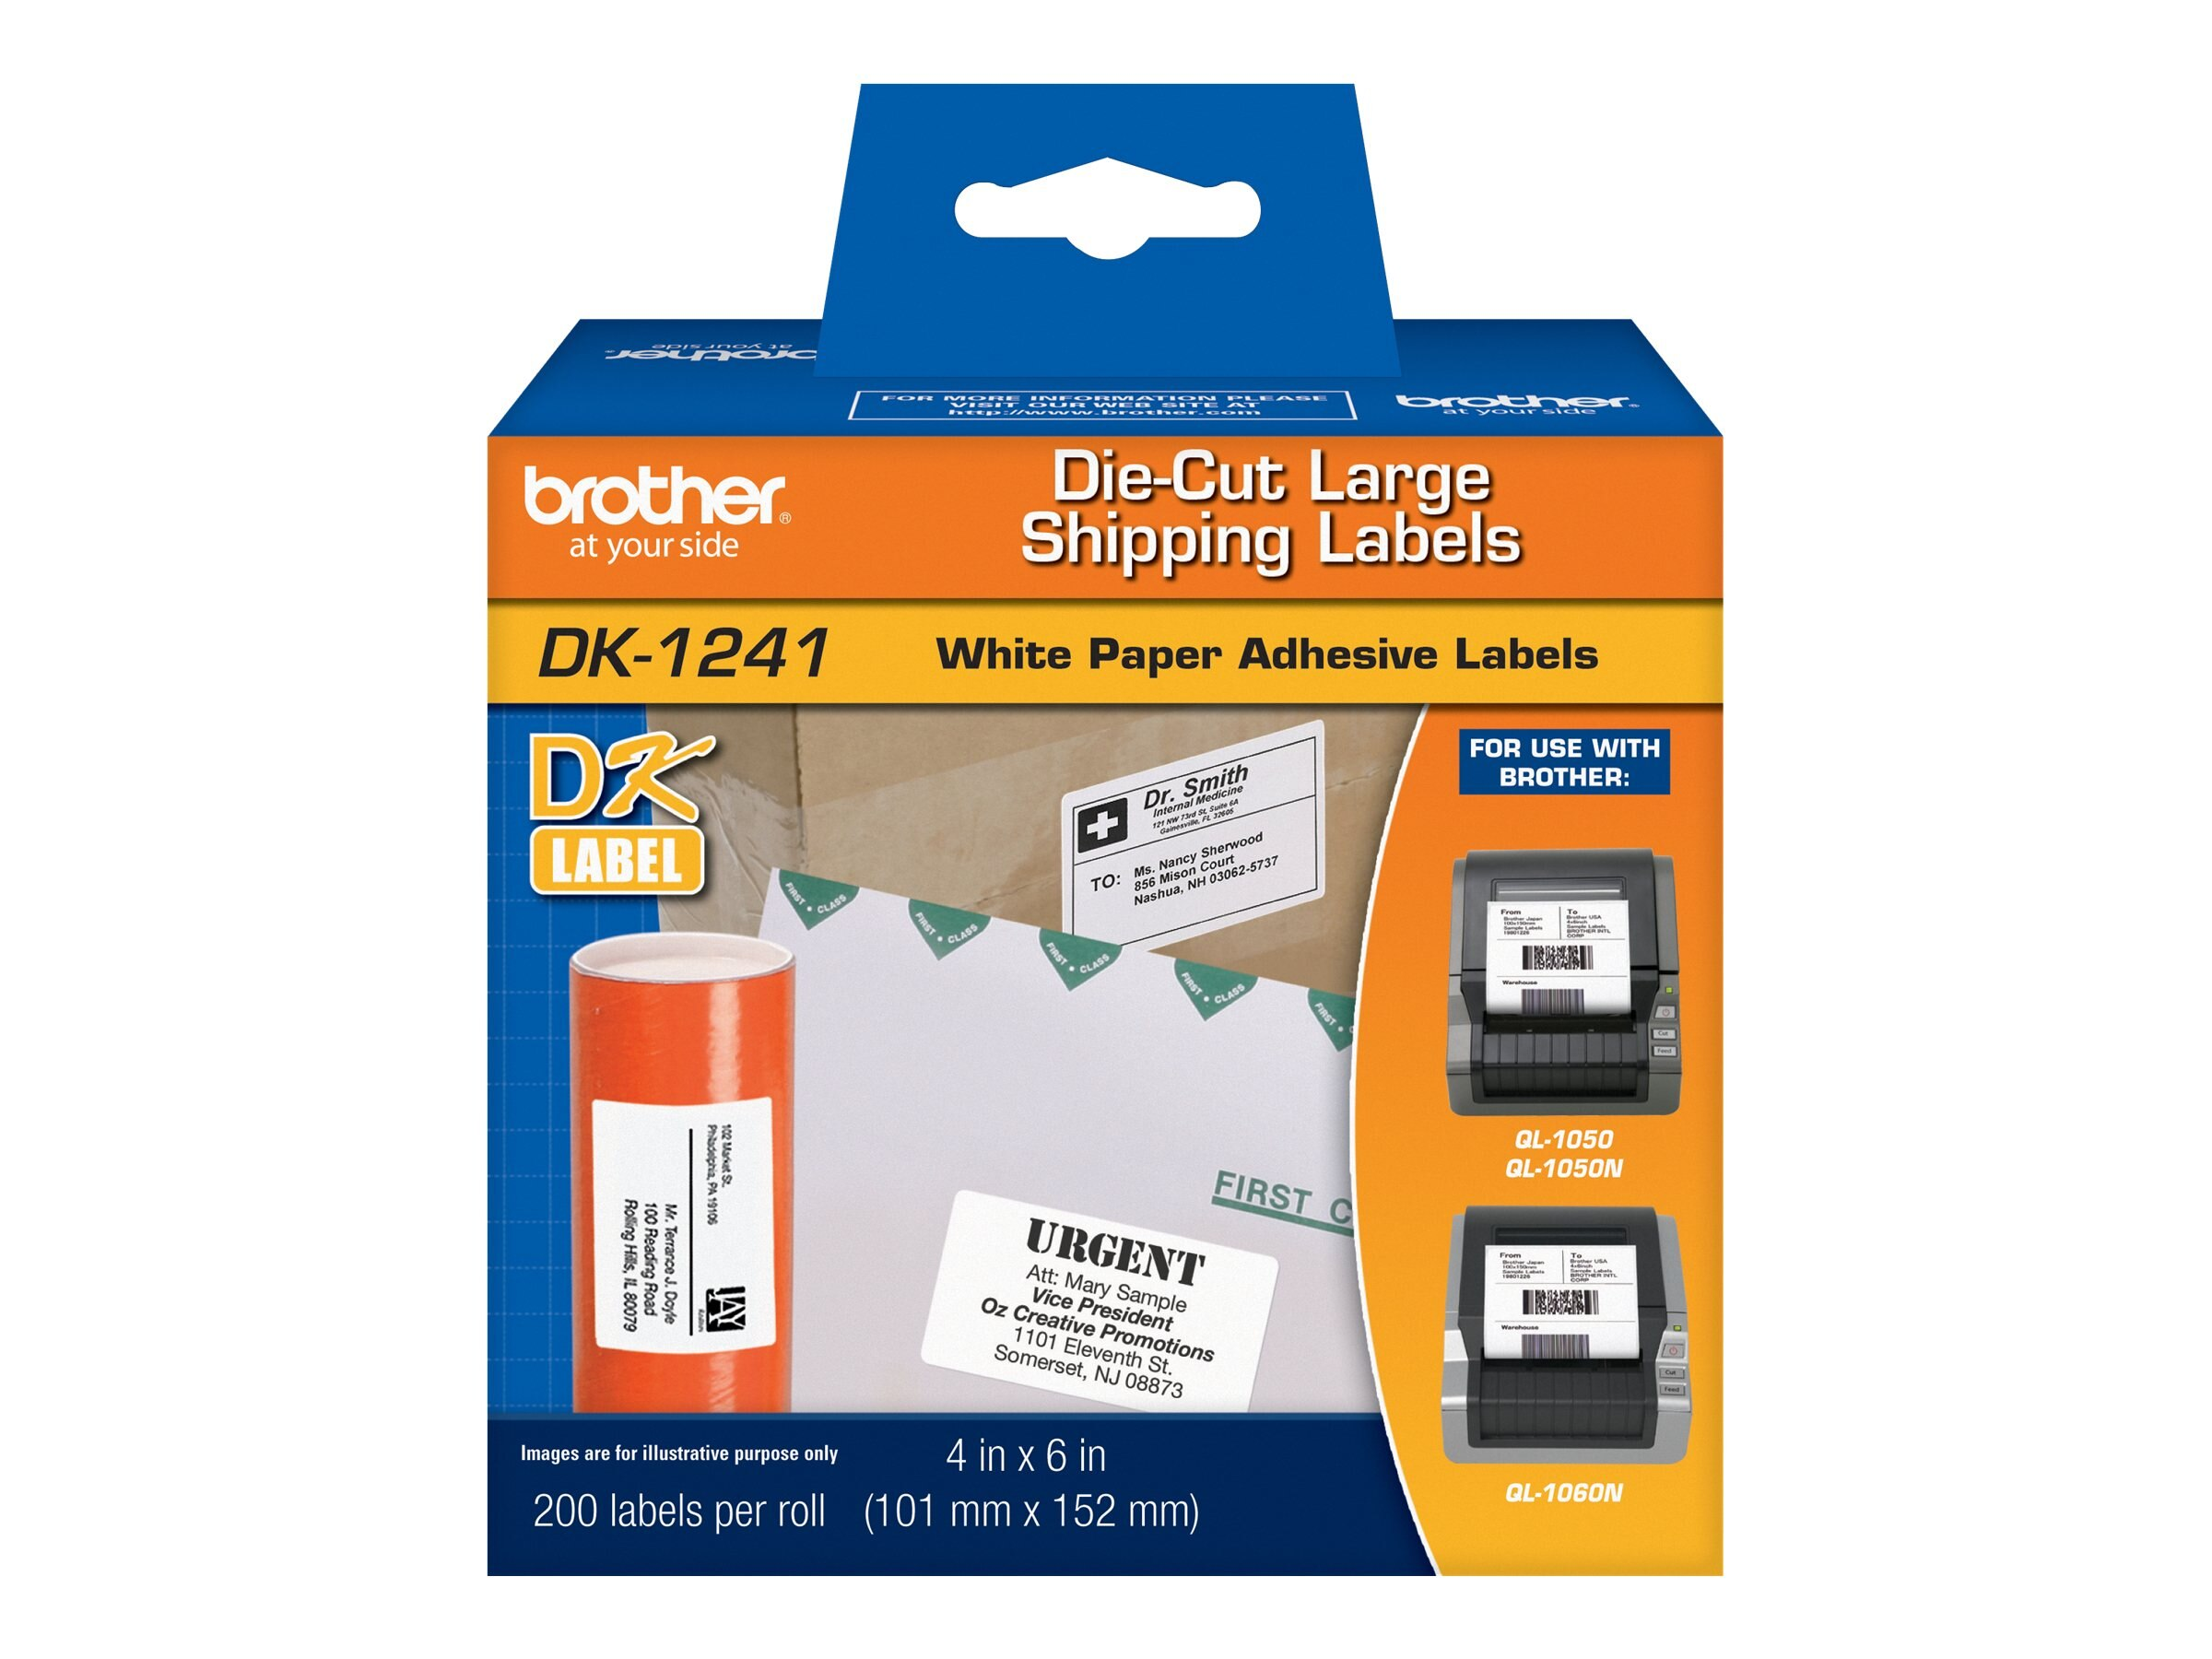 Brother 4 x 6 DK1241 Large Shipping Labels for QL-1050 QL-1060N (200 labels roll)